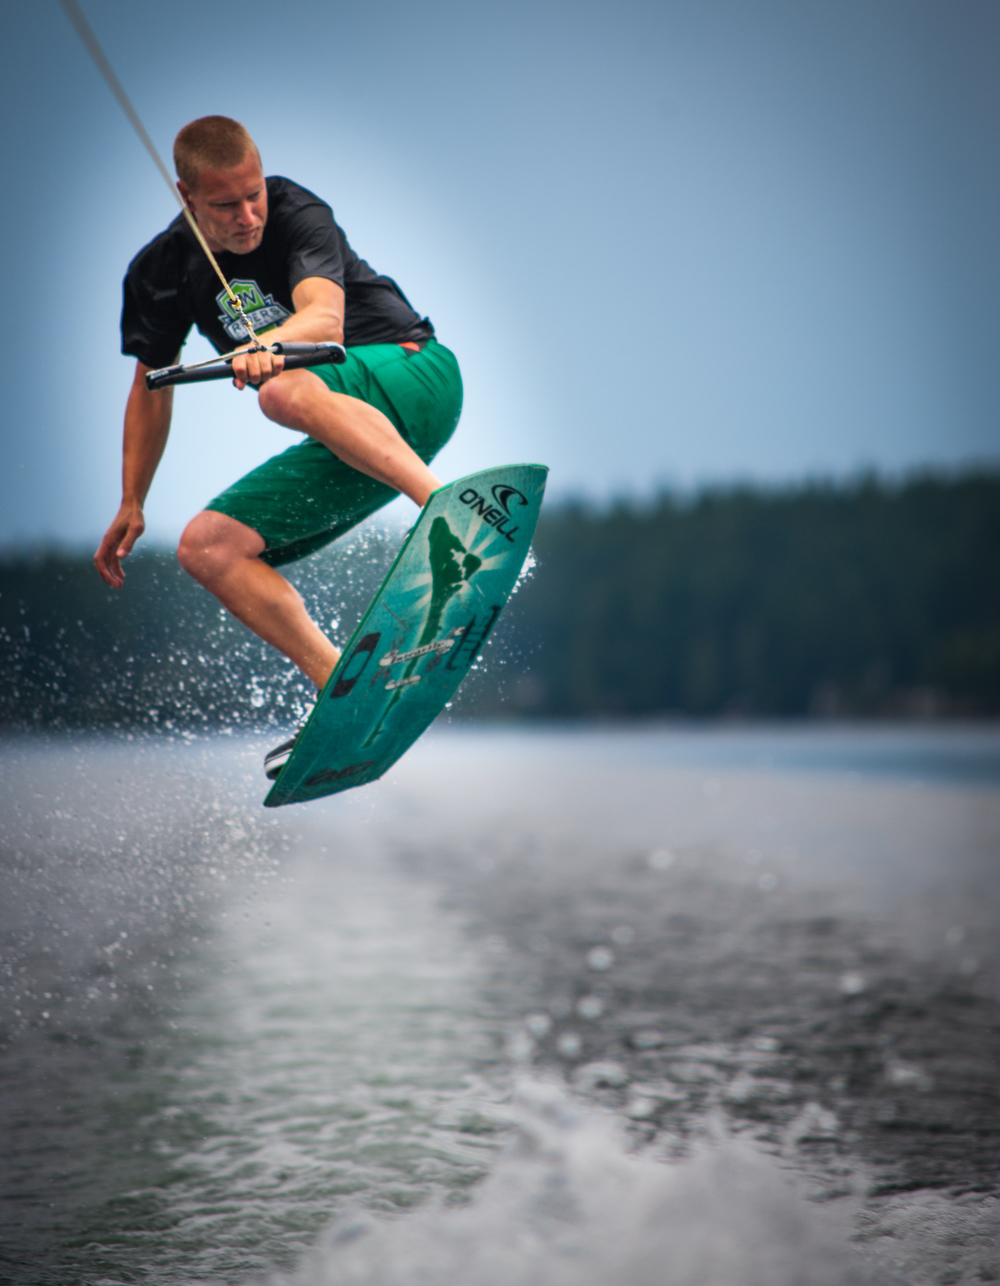 Mason Lake wakeskating with Aaron Huntley